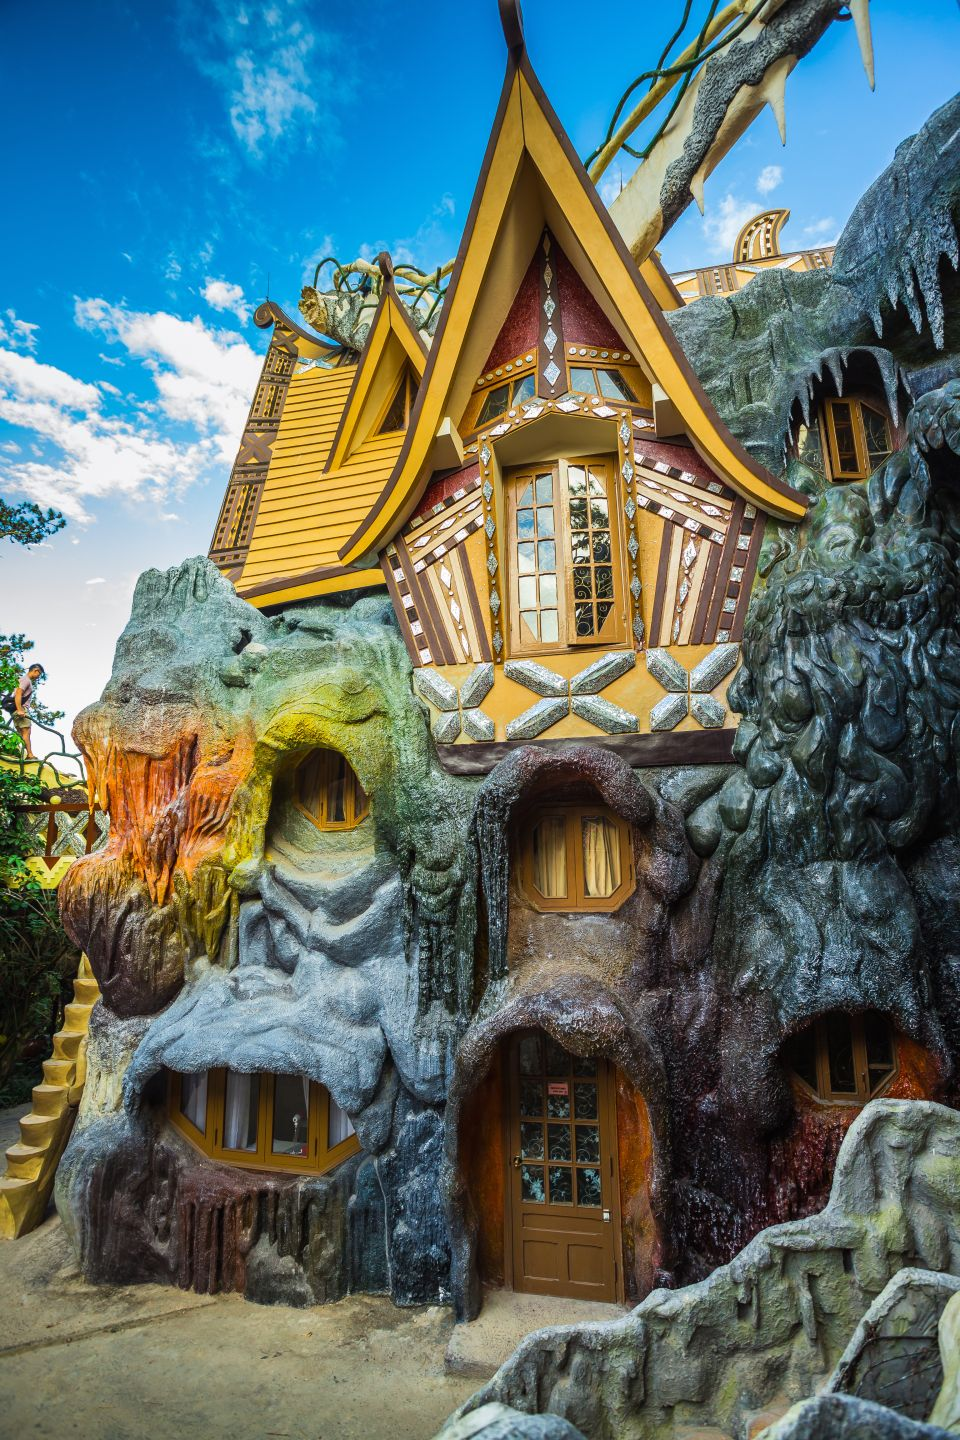 1. The Crazy House